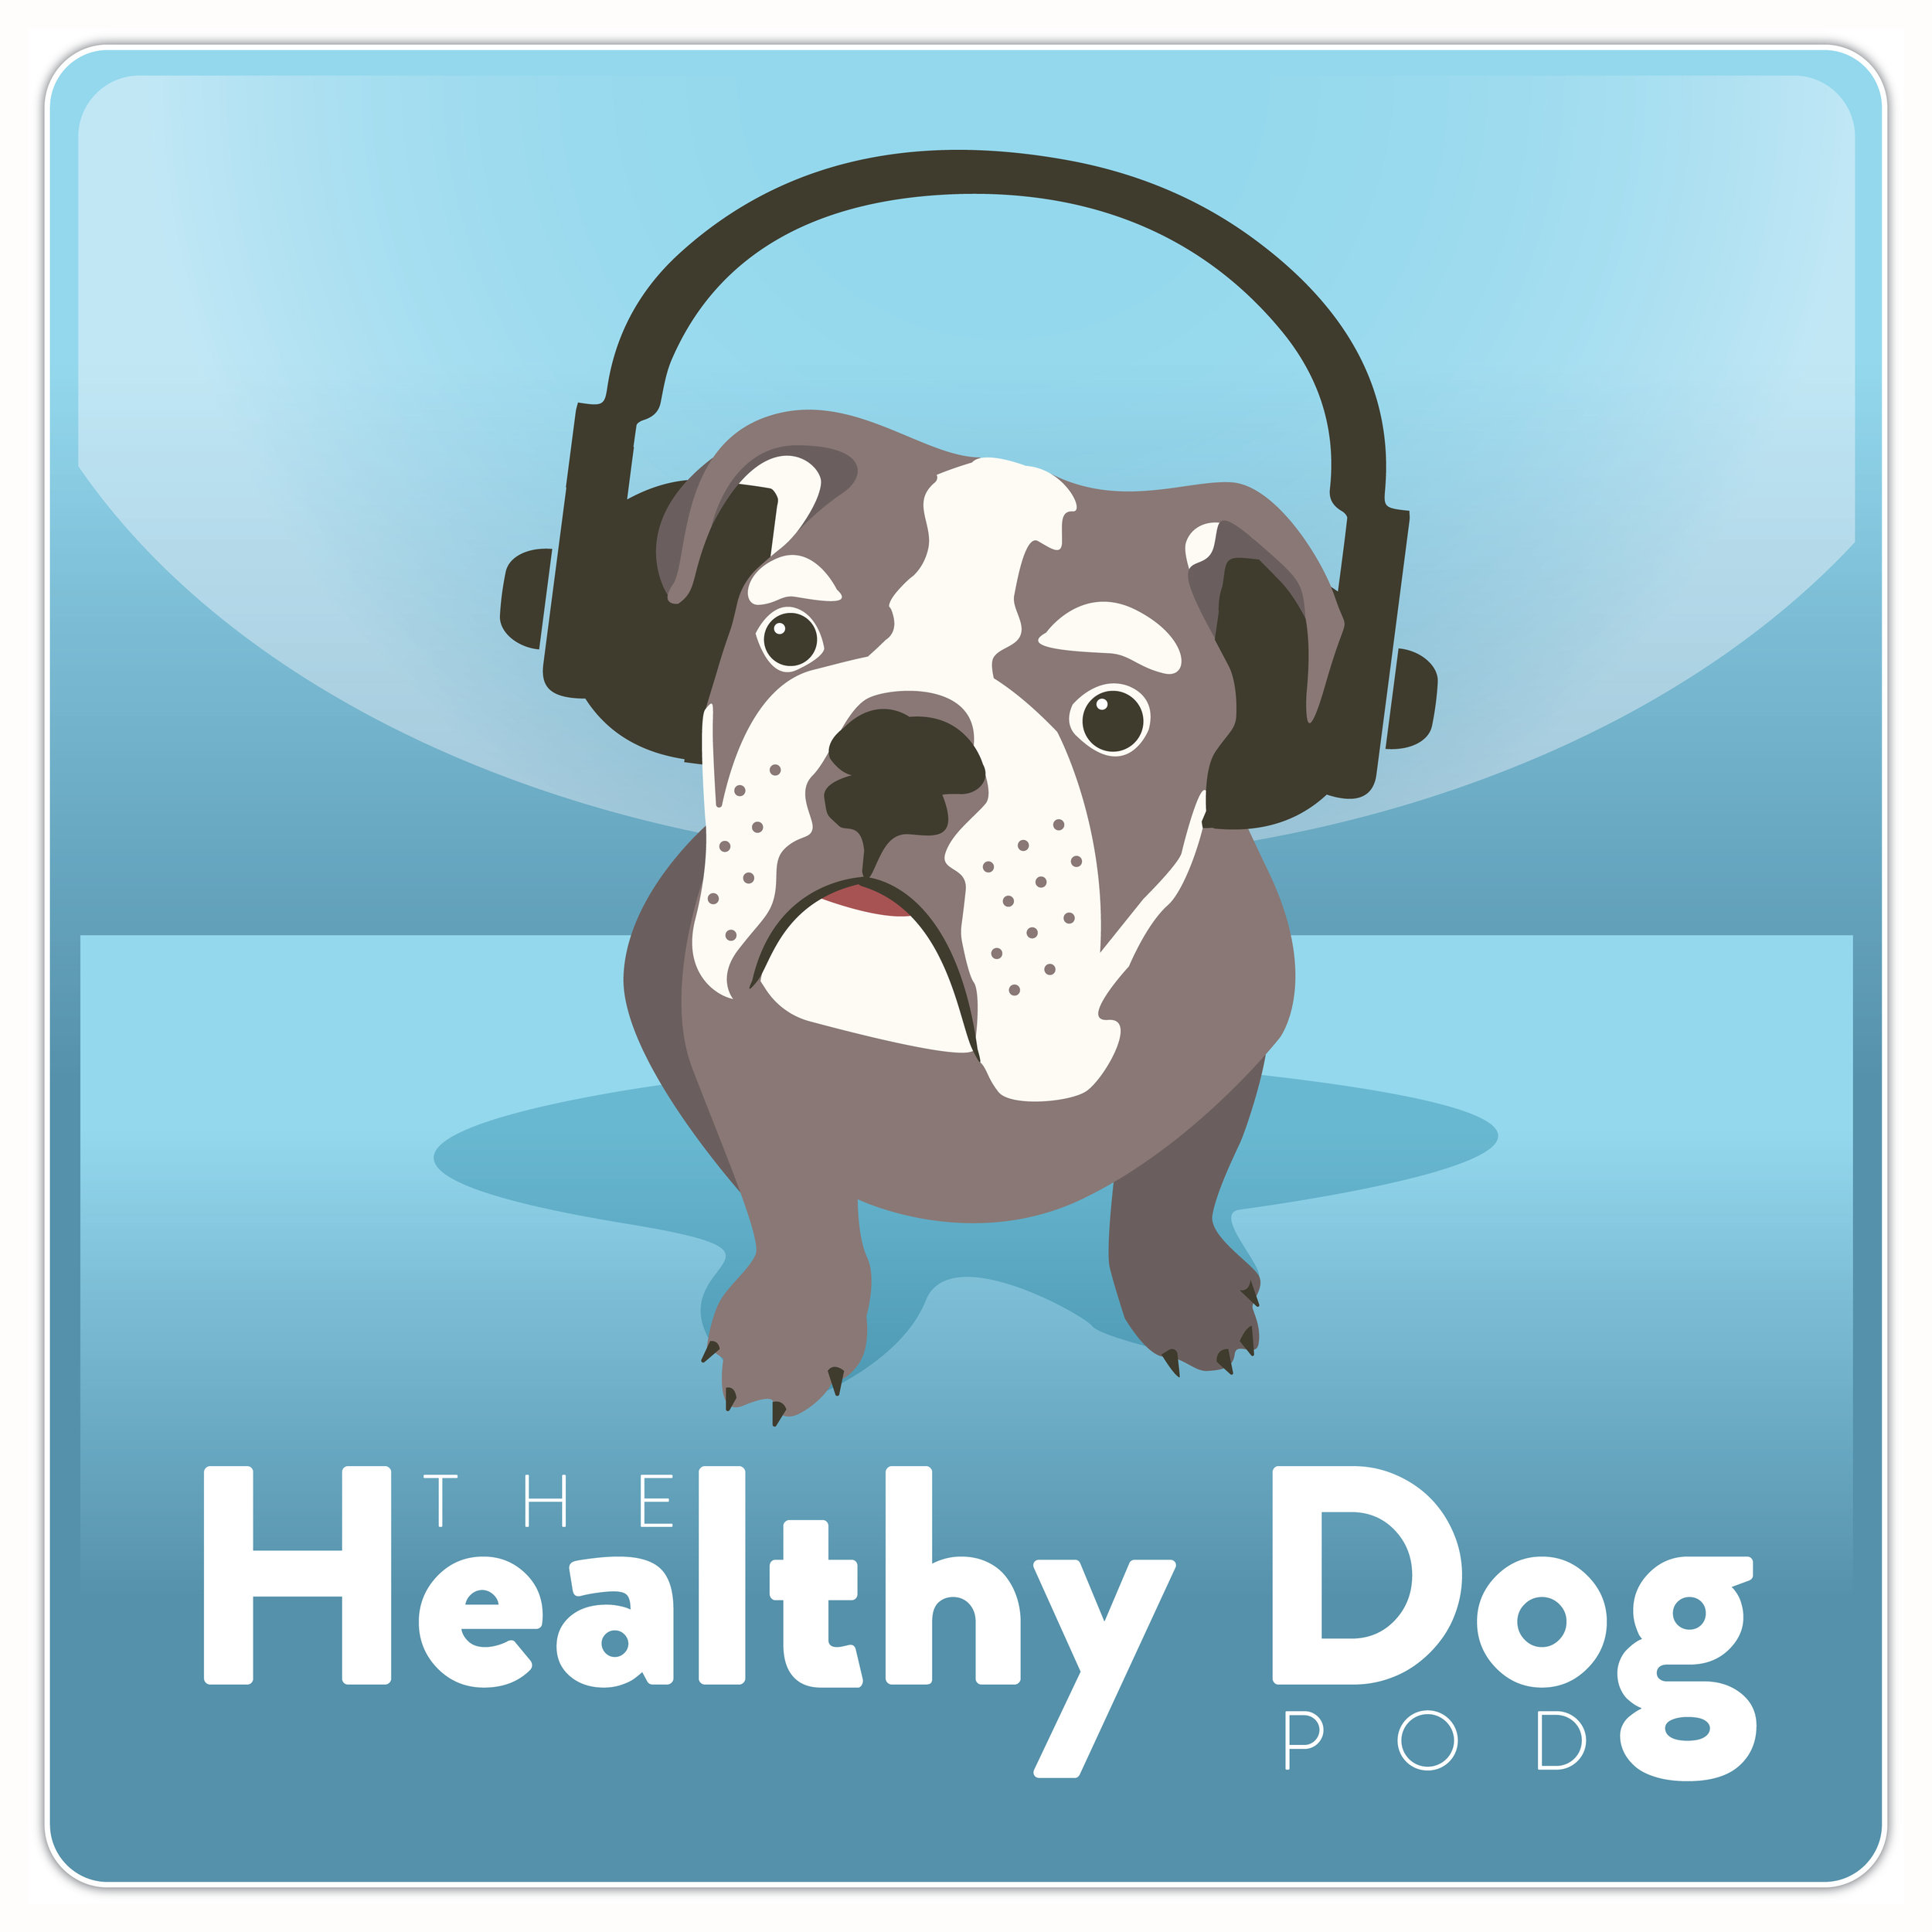 The Healthy Dog Pod_logo.jpg